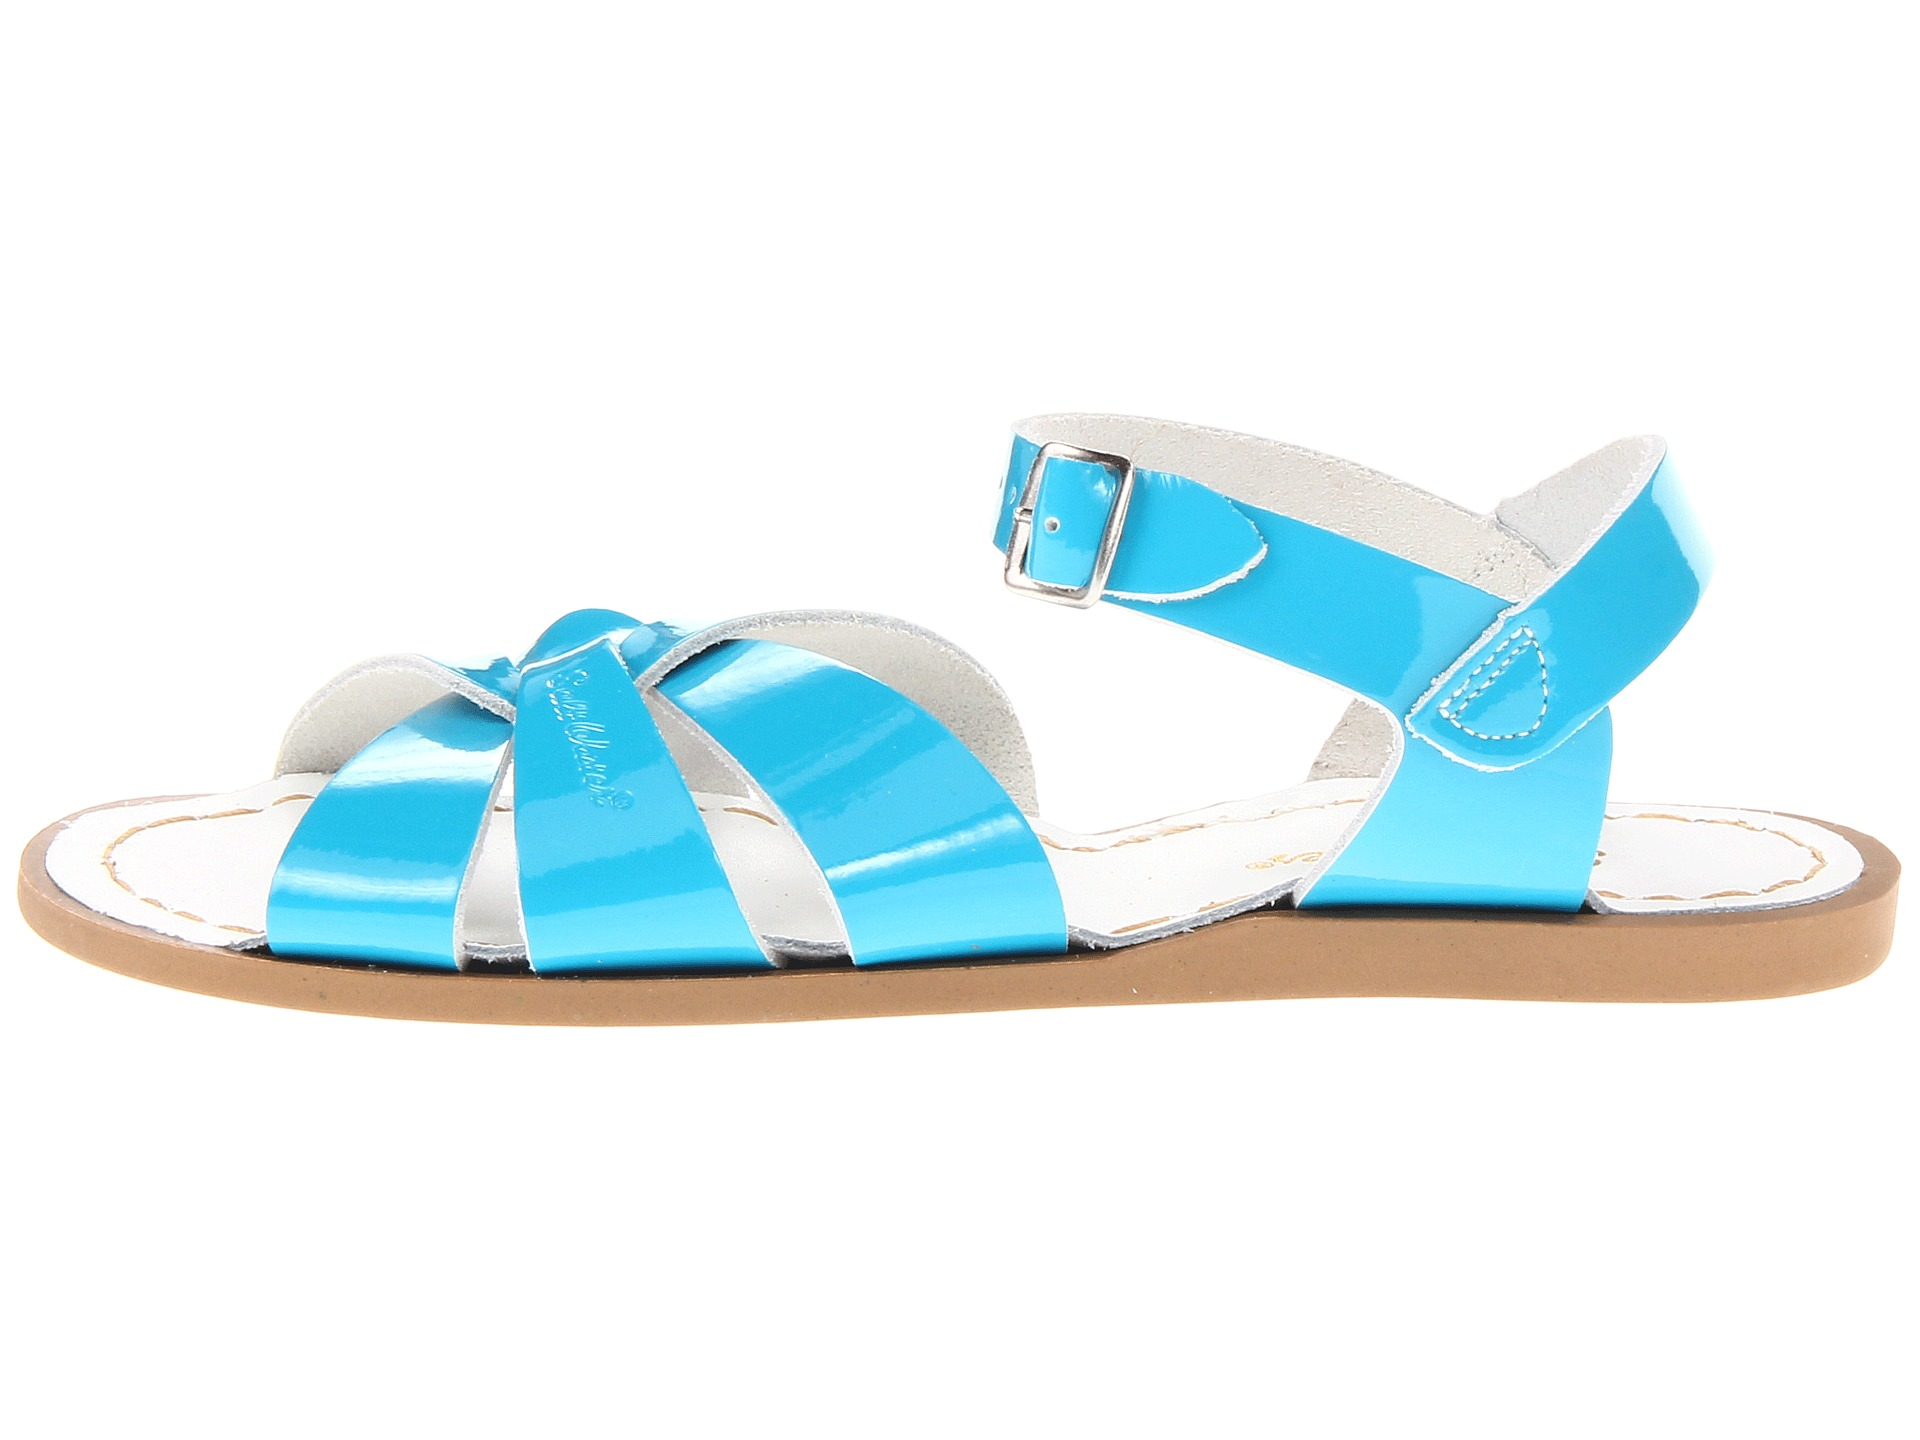 Where to buy saltwater sandals Shoes for men online